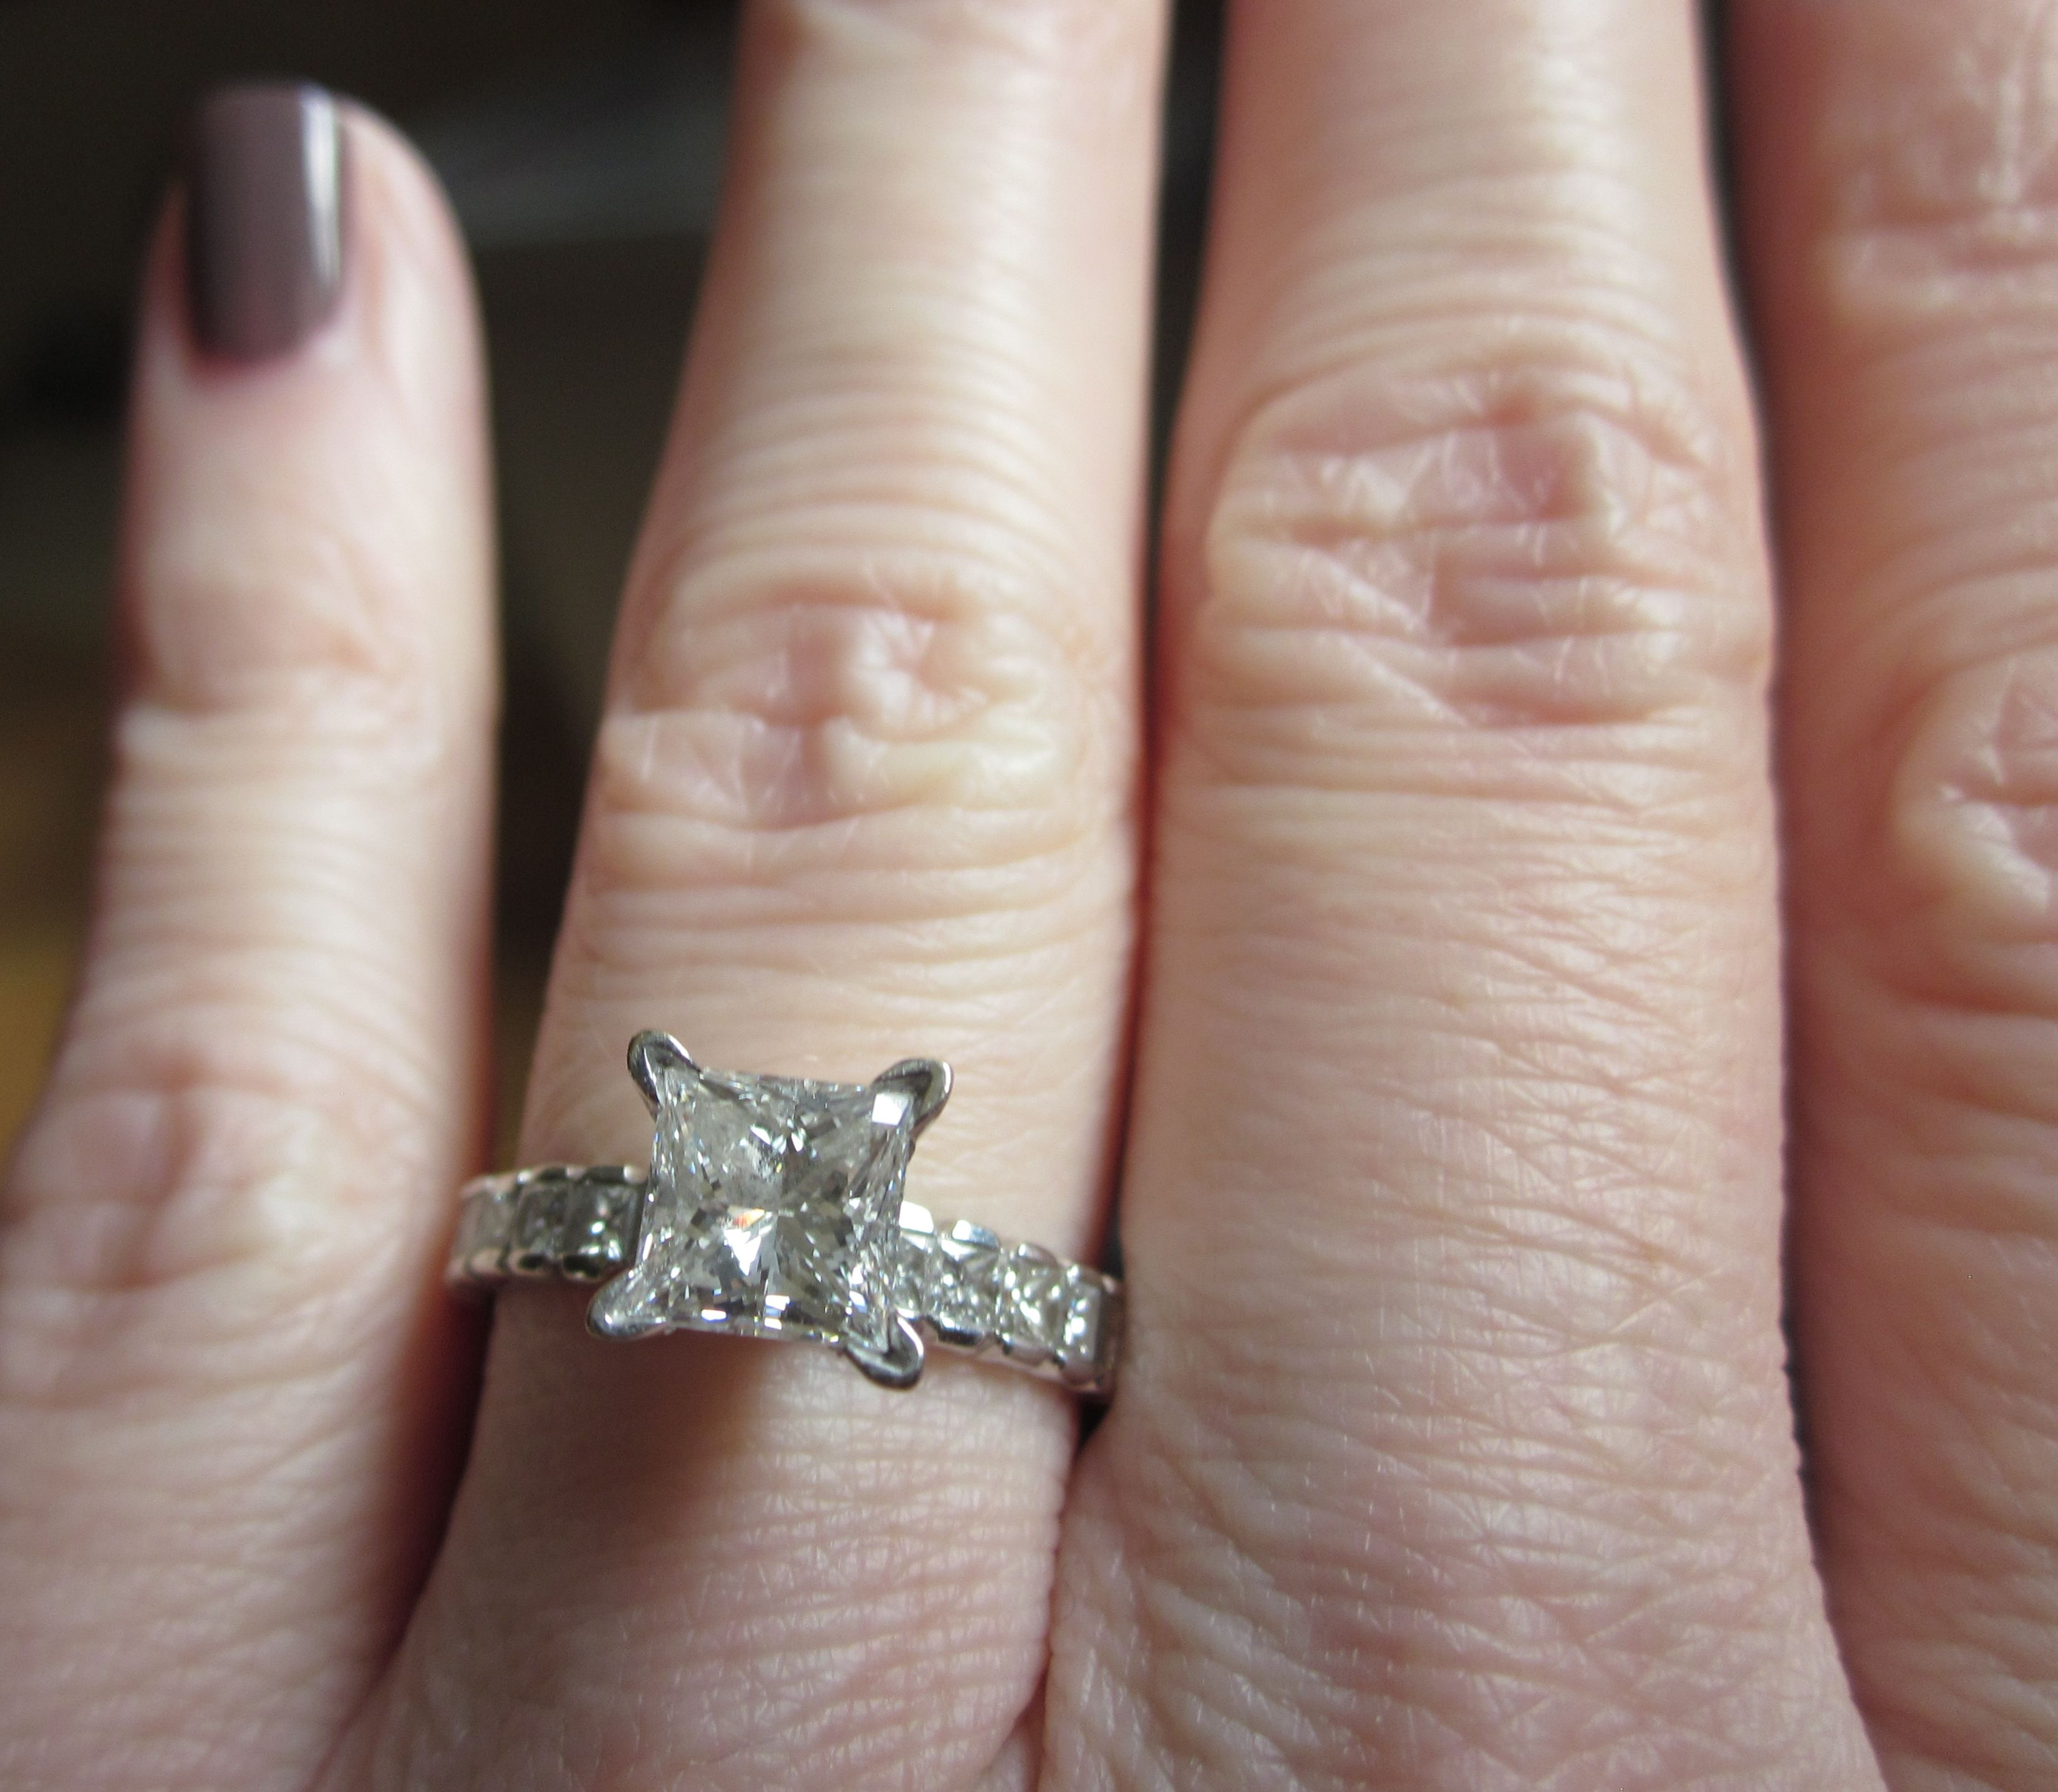 Princess Cut Engagement Rings On Fingers Pictures  Wedding